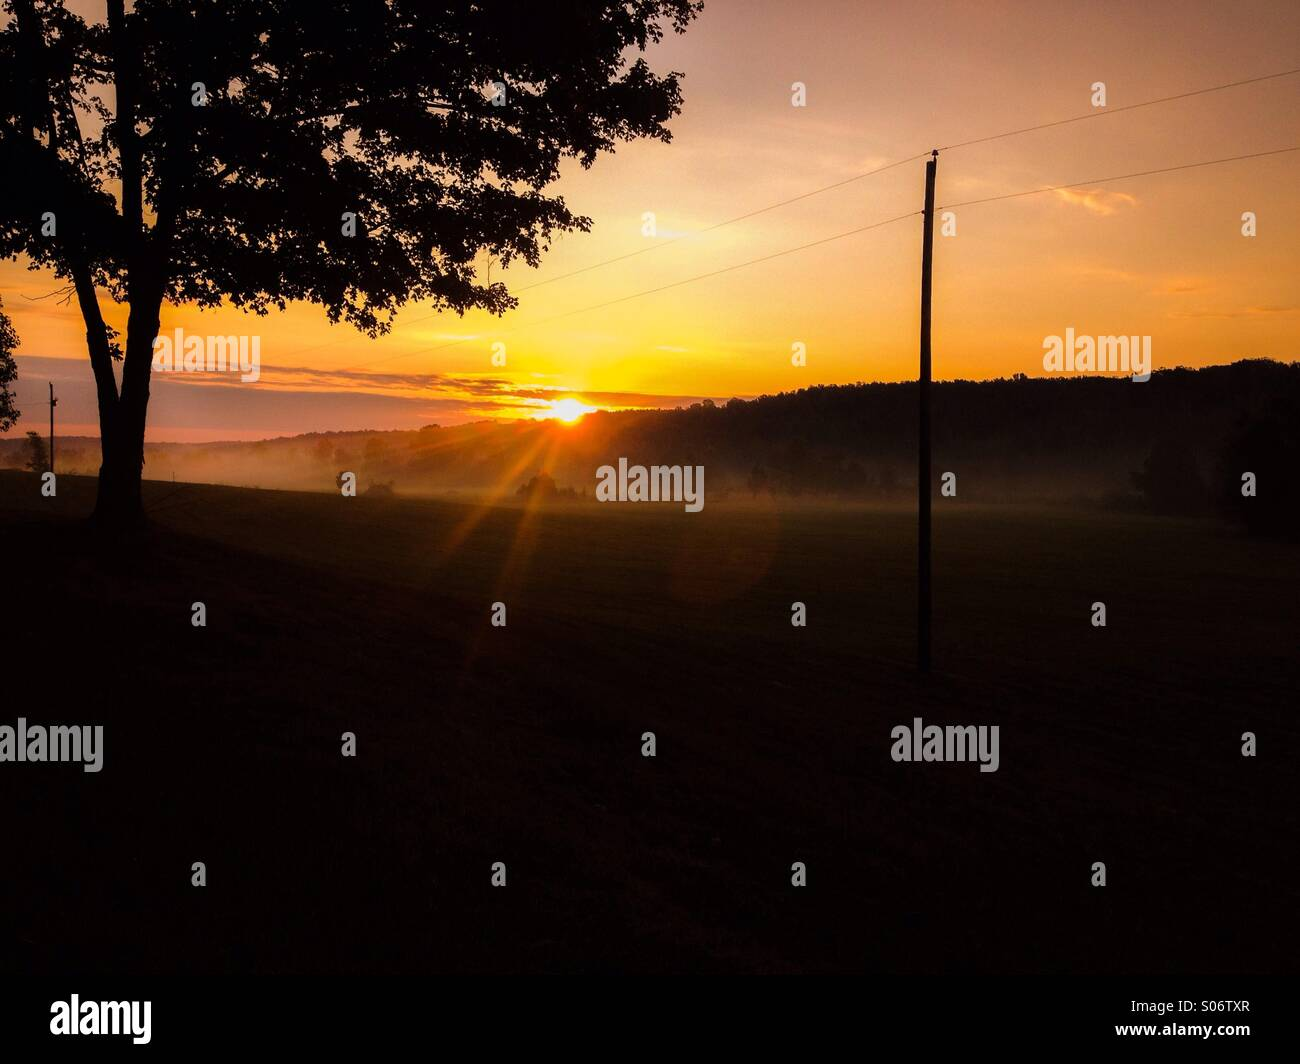 Golden autumn sunrise - Stock Image